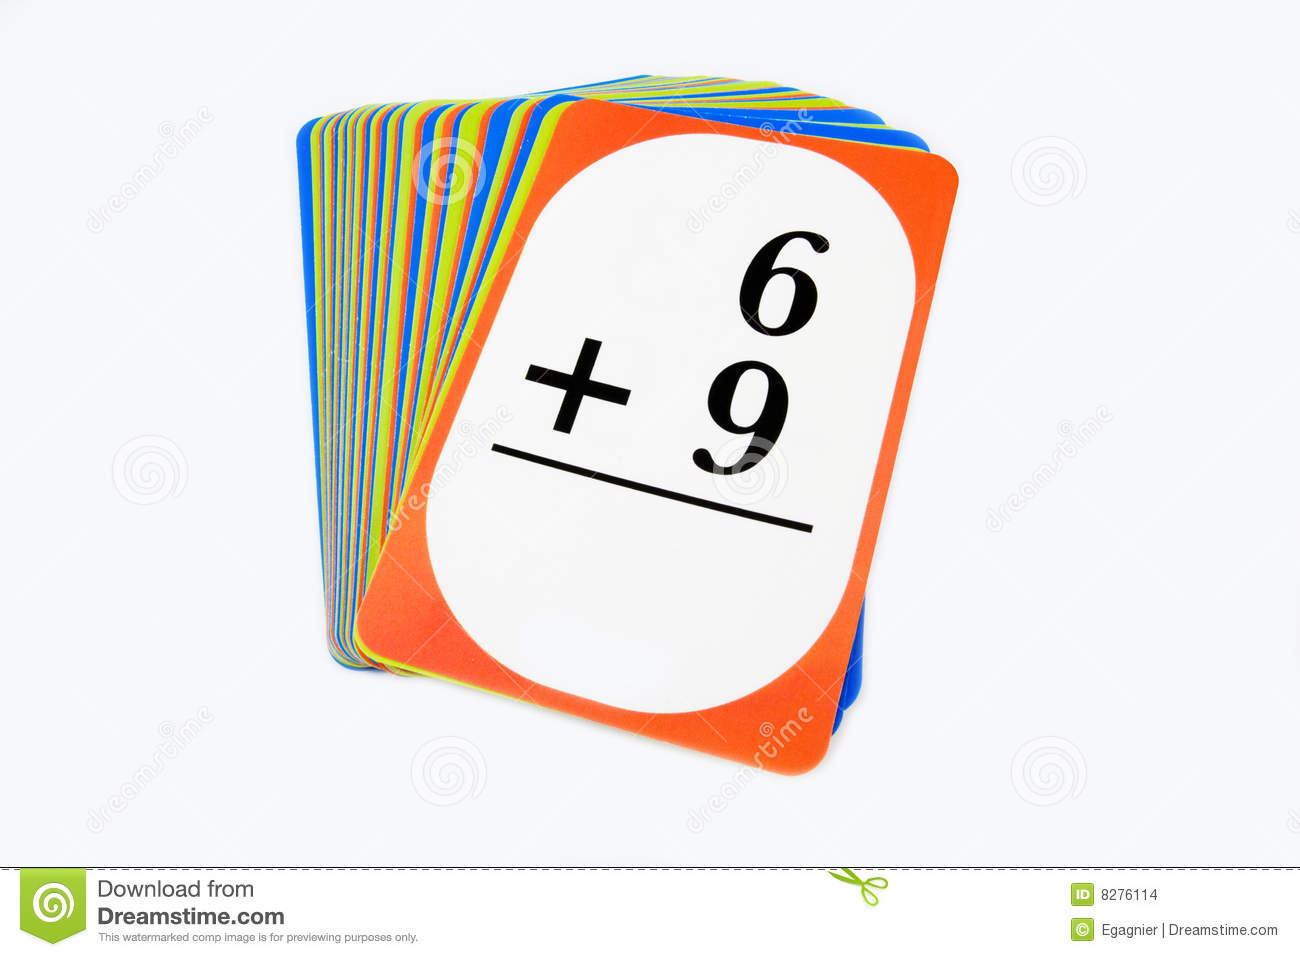 Math Flash Cards stock photo. Image of educate, flash - 8276114